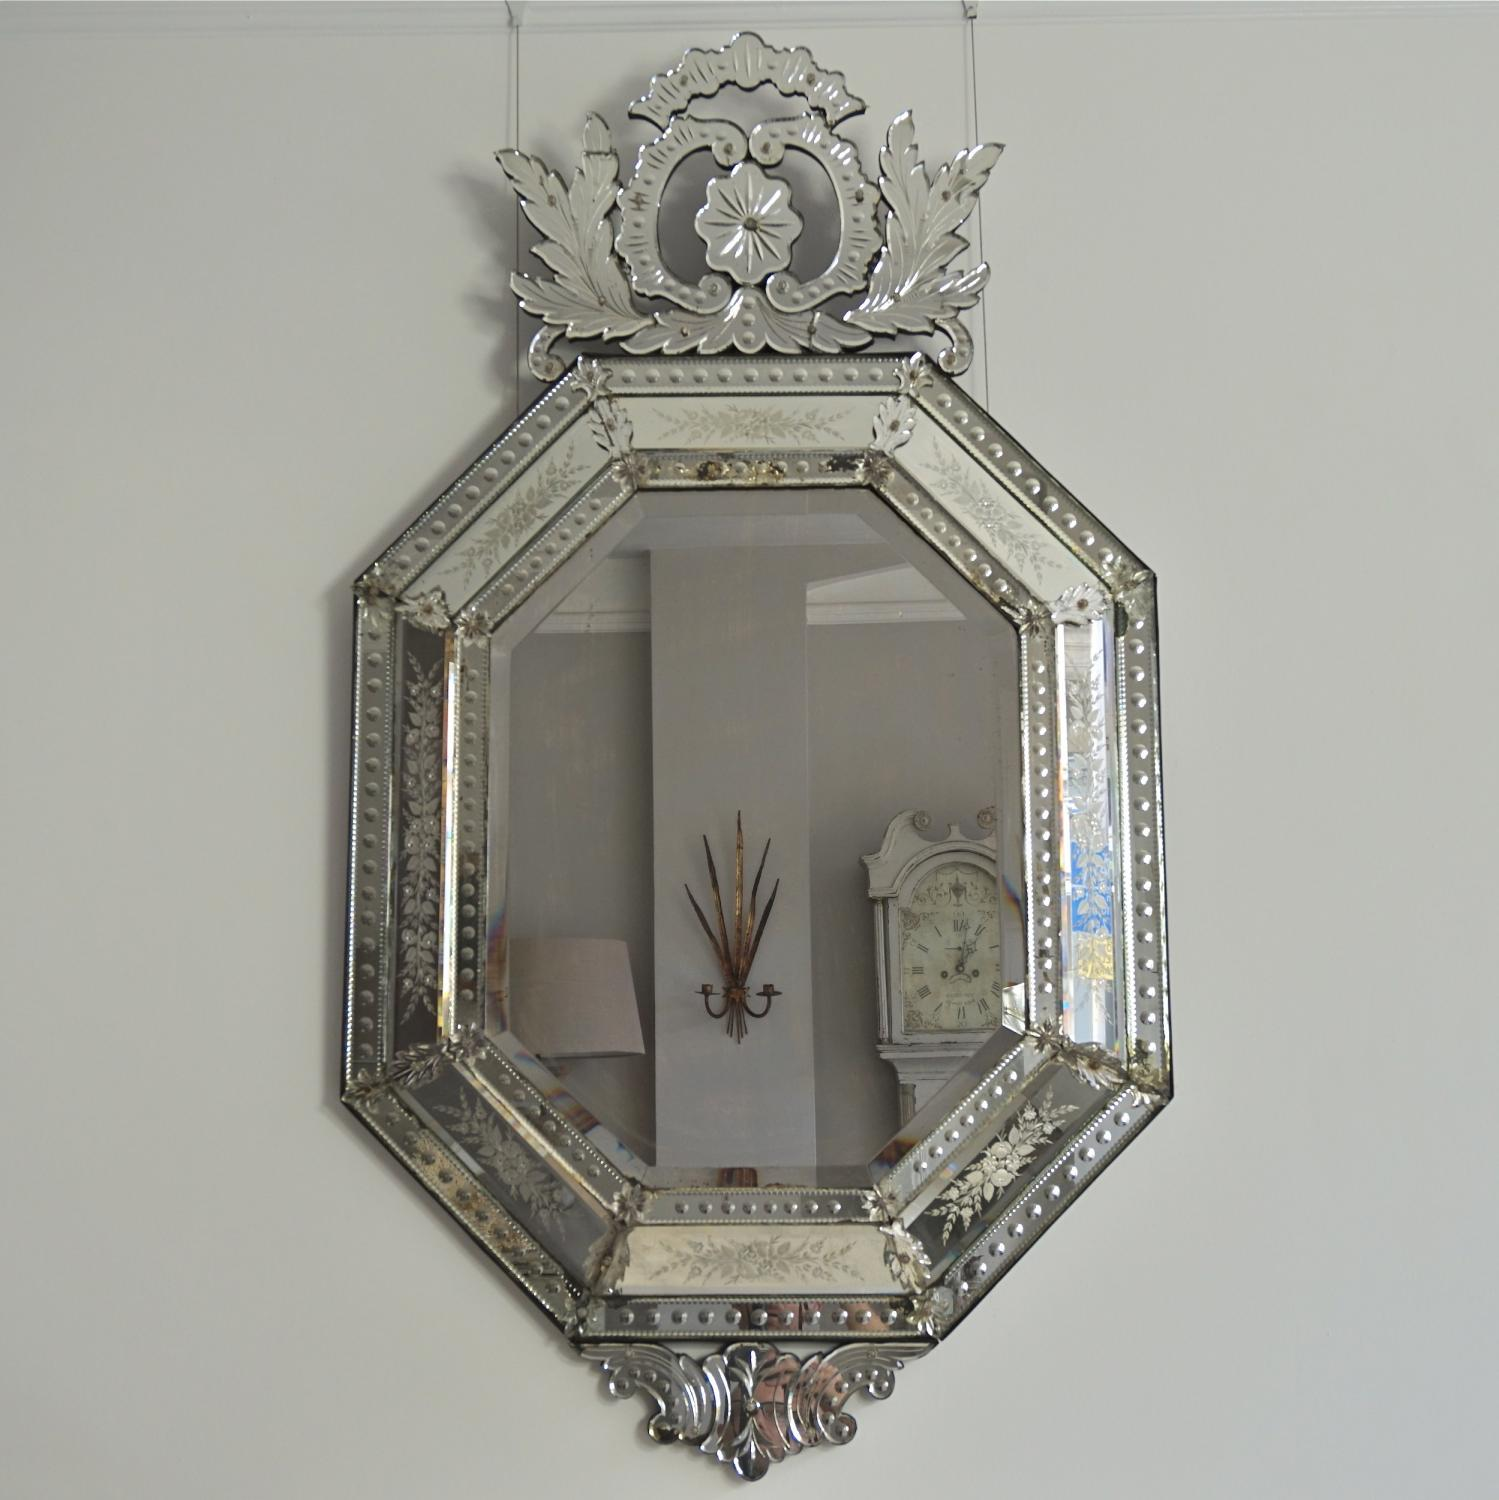 BEAUTIFUL ANTIQUE VENETIAN CRESTED MIRROR